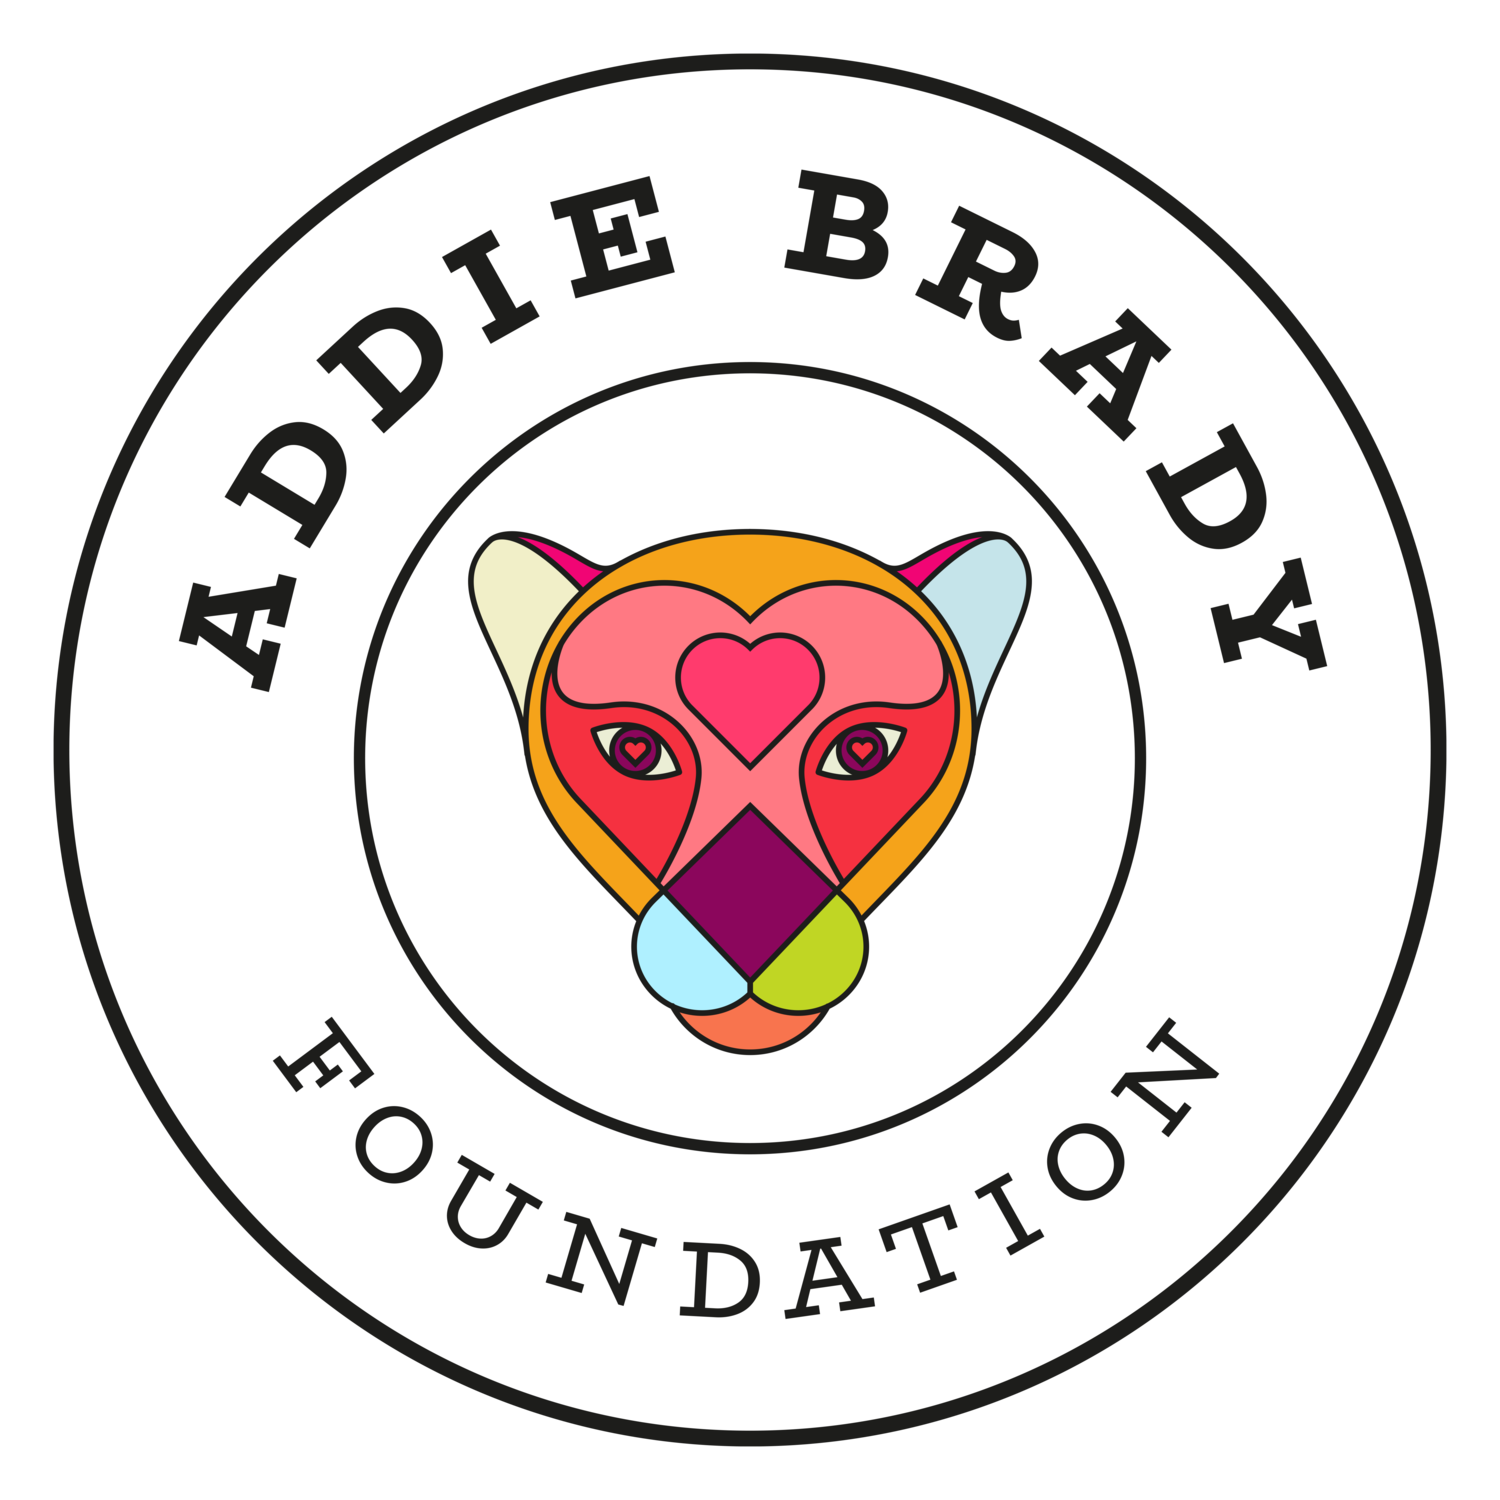 Addie Brady Foundation